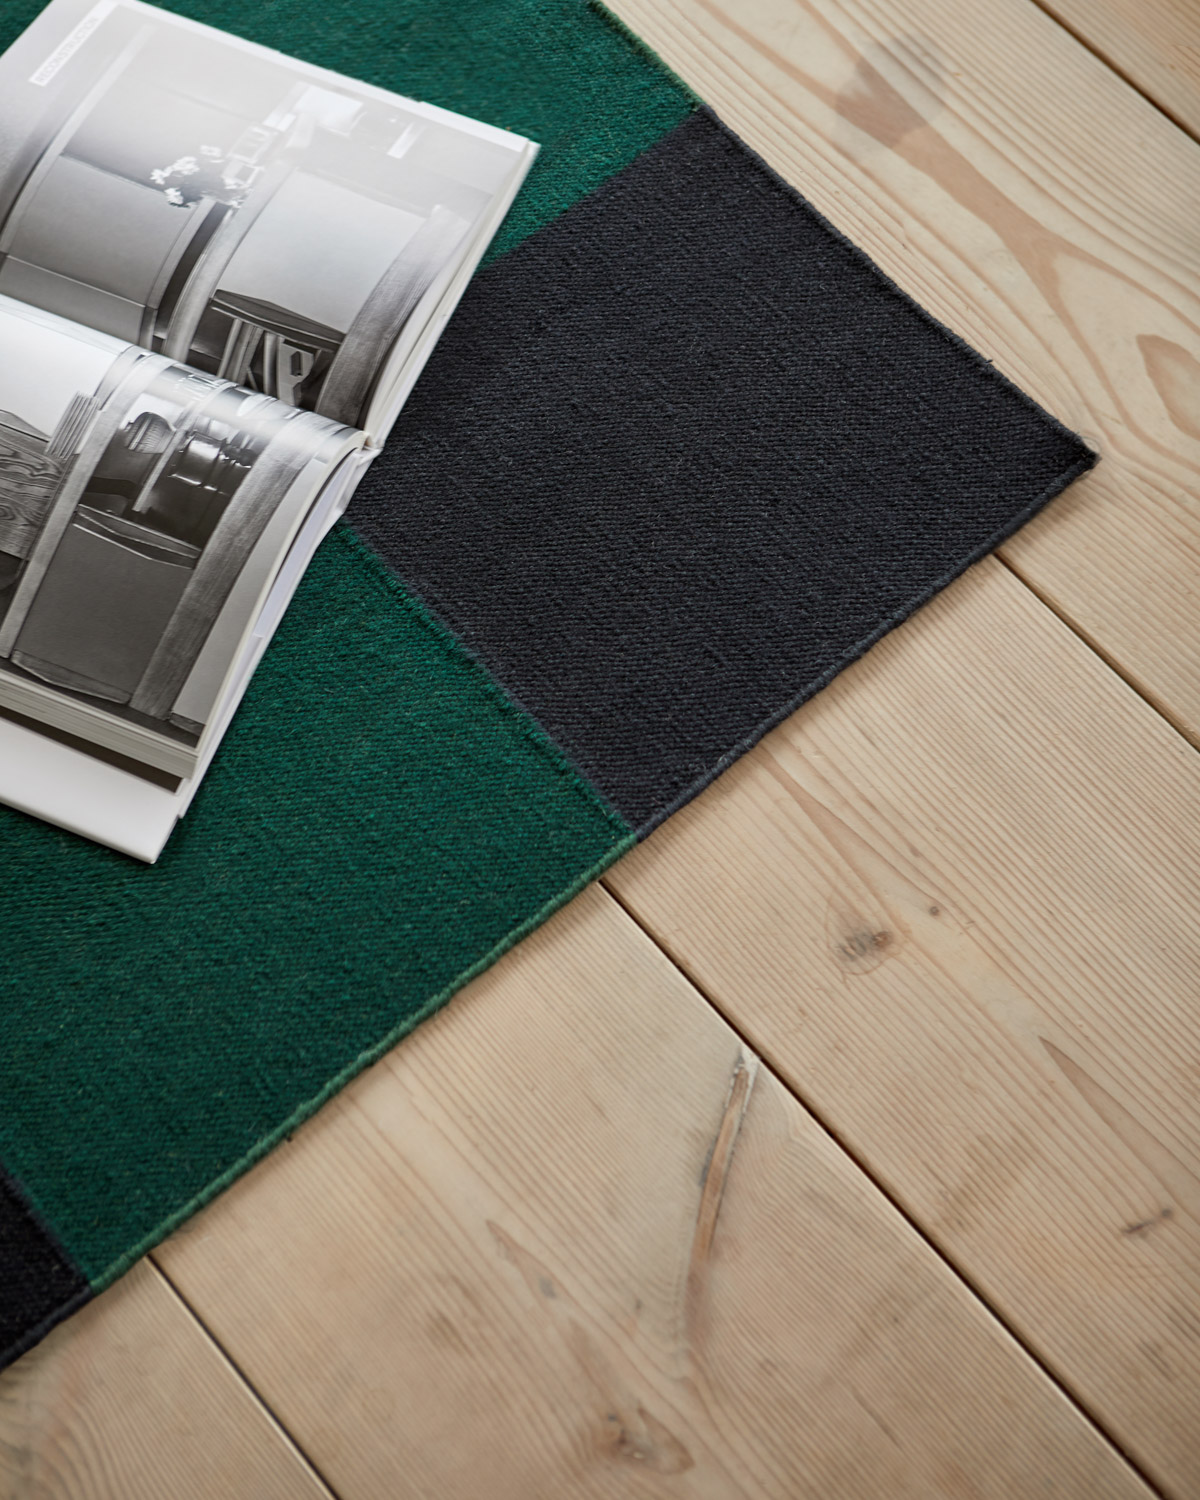 Close up of the Green/Black Square rug.